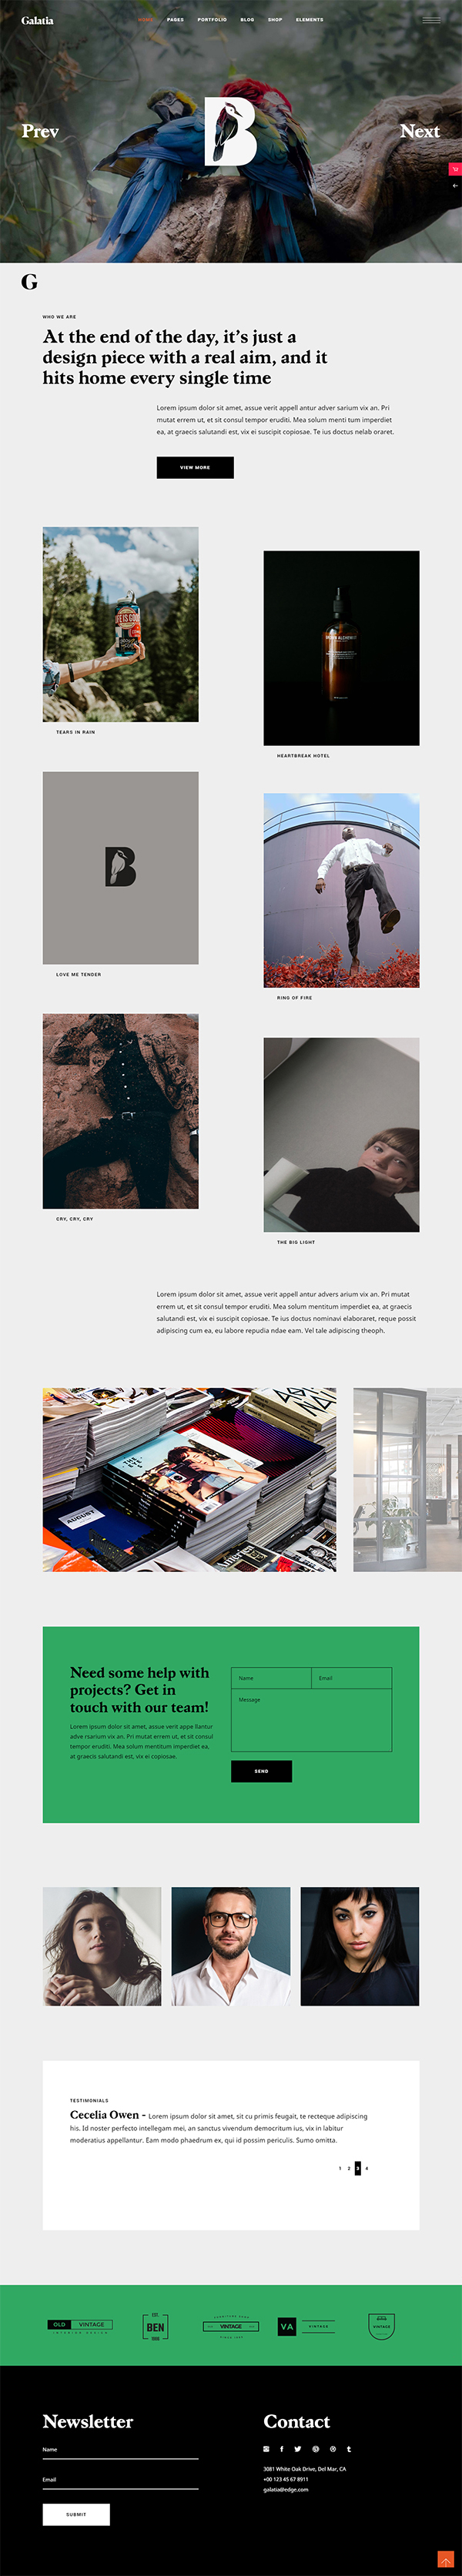 Galatia - Contemporary Agency Theme